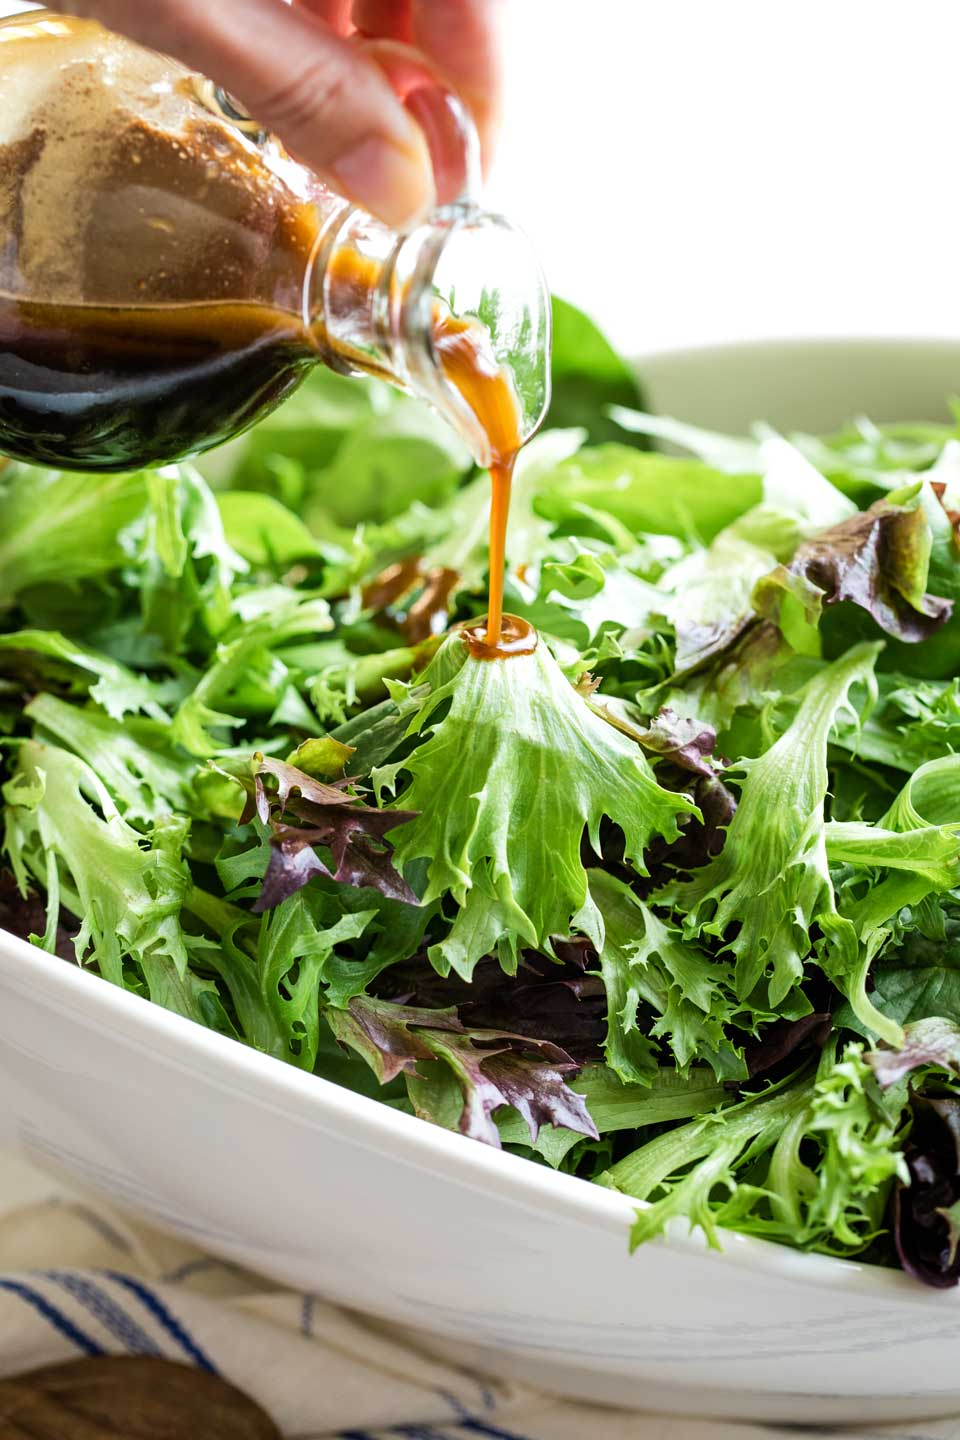 salad greens in large white porcelain bowl, with cruet of balsamic vinaigrette just beginning to be poured in a slow stream over top